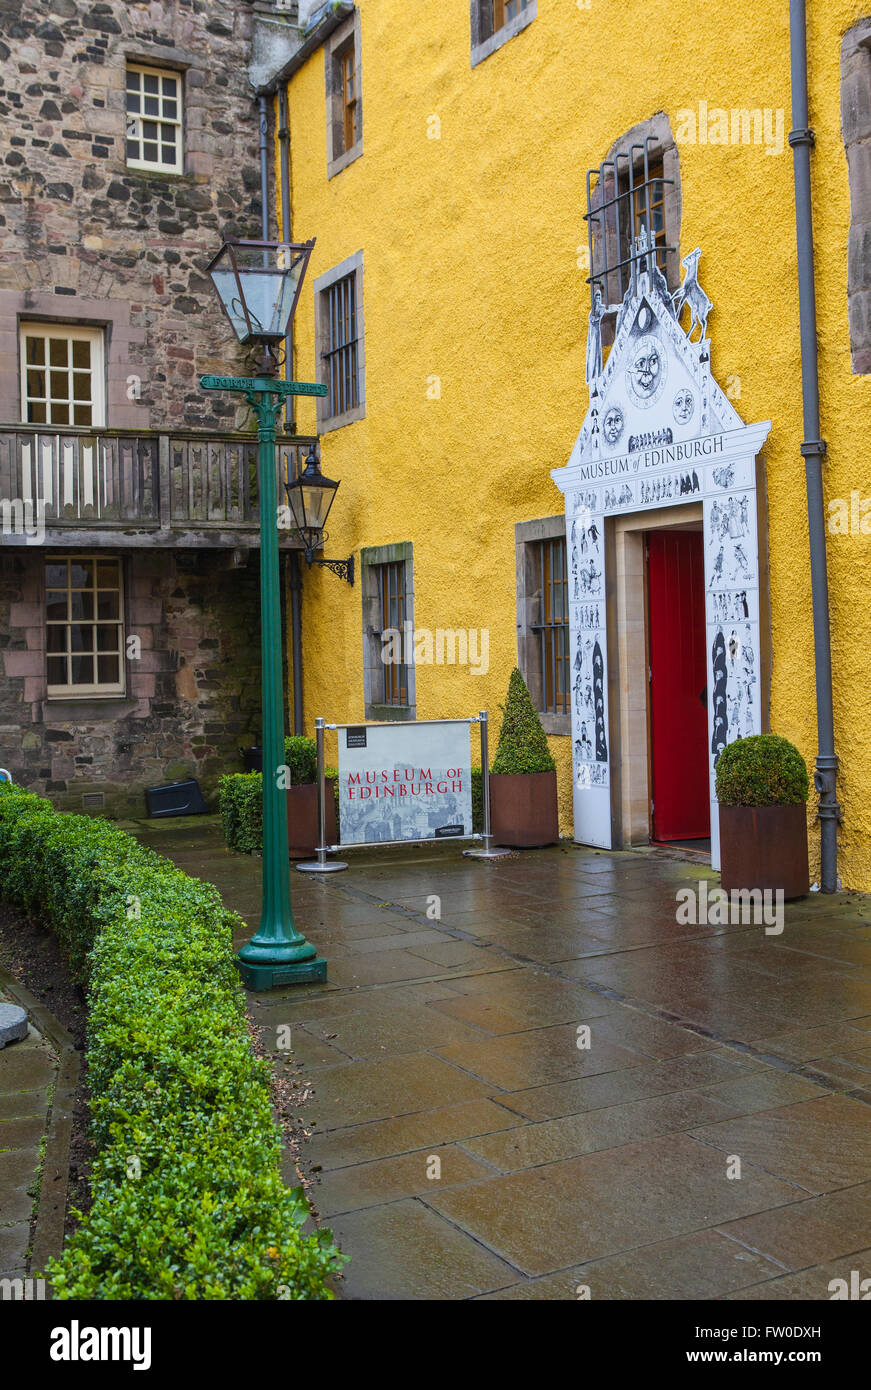 EDINBURGH, SCOTLAND - MARCH 12TH 2016: The main entrance to the Museum of Edinburgh situated on Canongate along Stock Photo